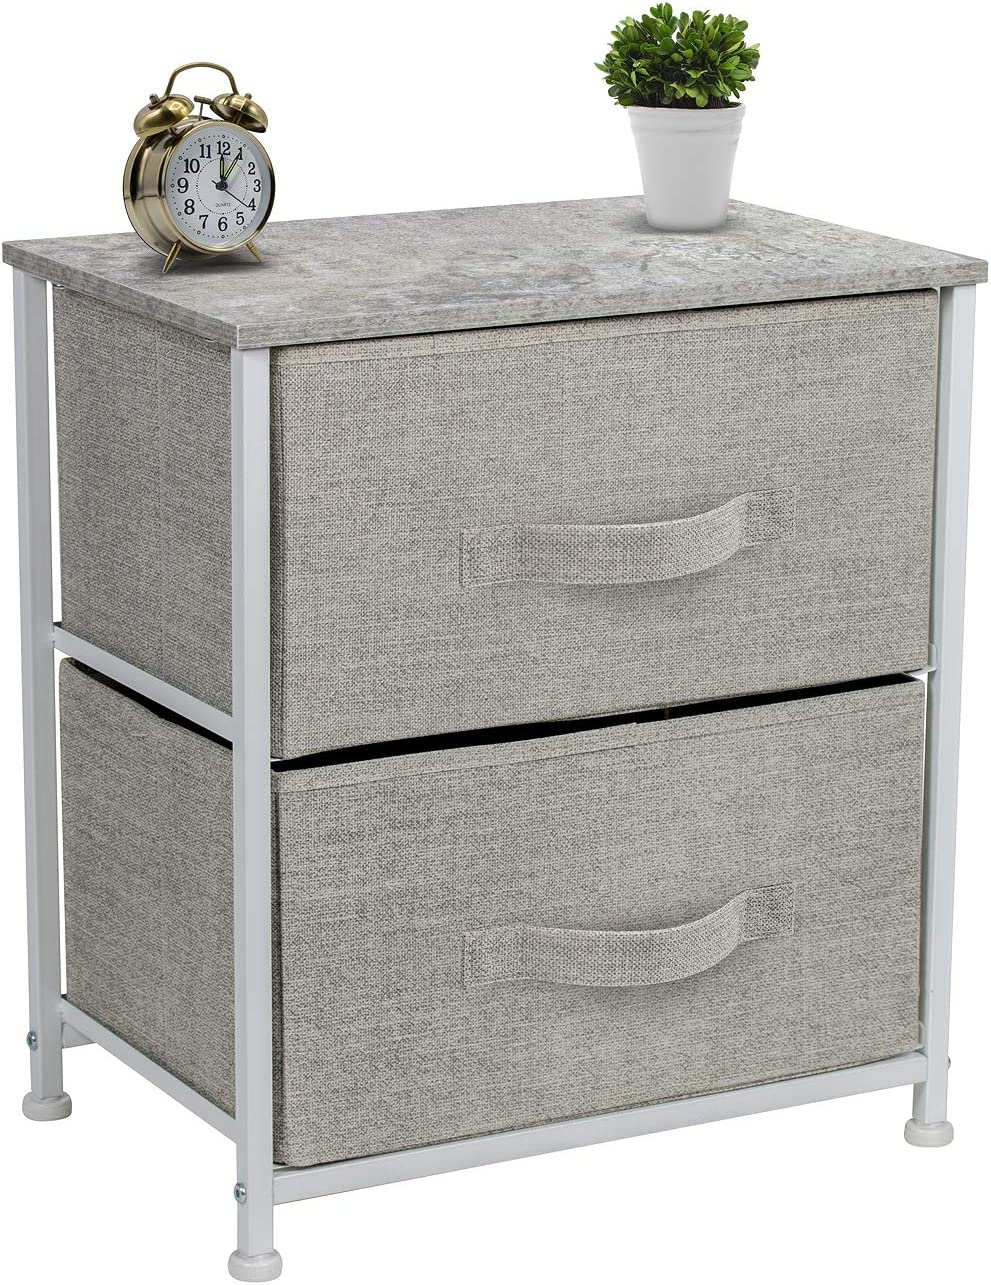 YAHEETECH Bedside Table Nightstand with Drawer End Tables for Bedroom Narrow Space